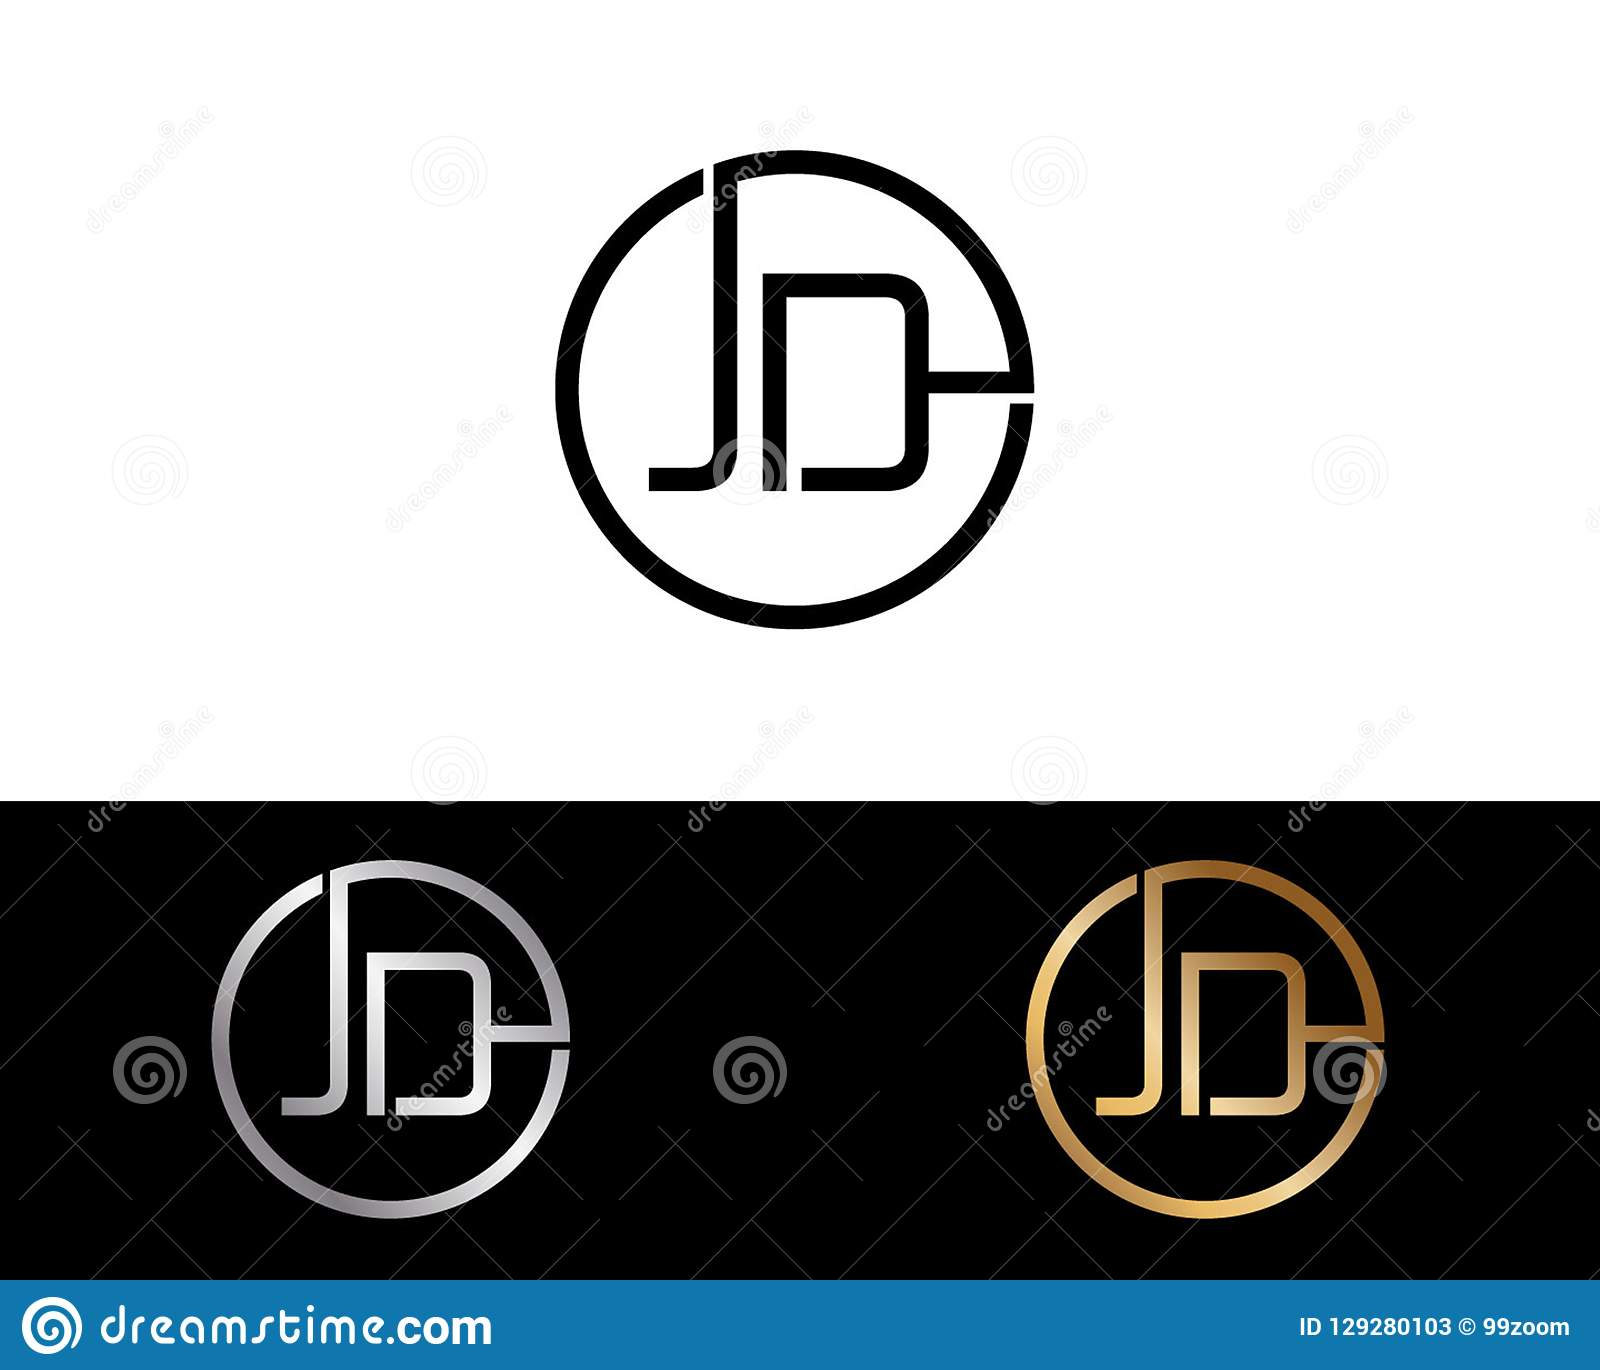 jd circle shape letter logo design stock vector illustration of clinical designn 129280103 https www dreamstime com jd circle shape letter logo design circle shape letter logo type red silver gold black circle letter combination logo design image129280103